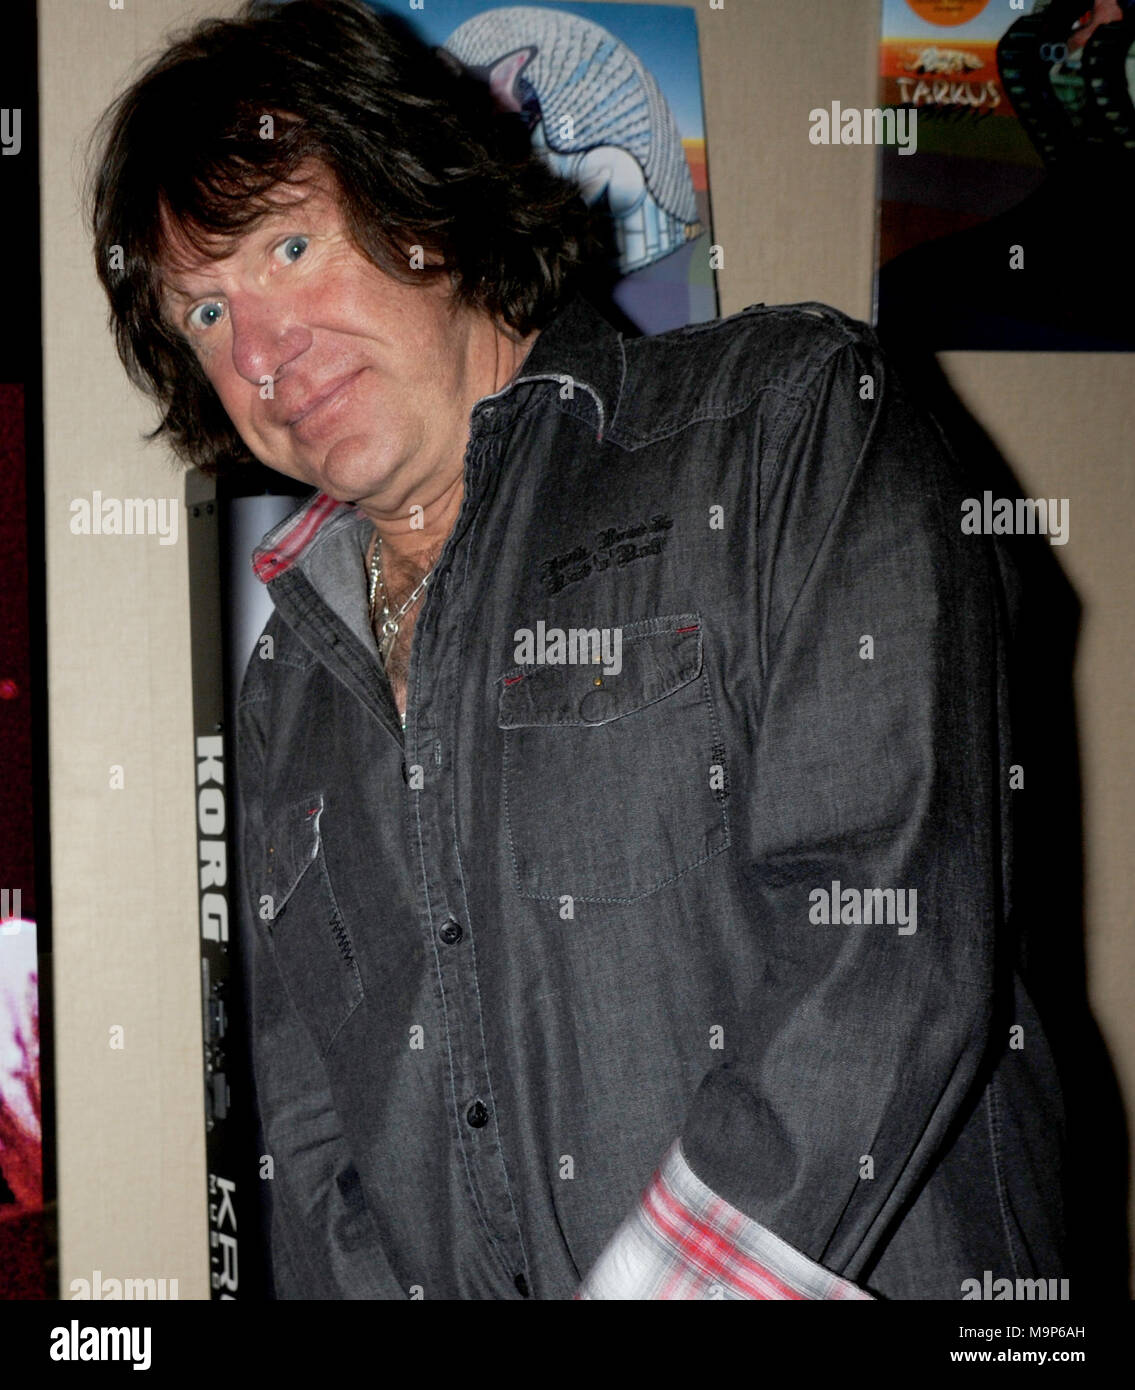 NEW YORK, NY - 2012: Keith Emerson, the flamboyant, English prog-rock pioneer who rose to fame as the keyboardist for supergroup Emerson, Lake & Palmer in the '70s, died in Santa Monica, Calif. on Thursday at age 71.Orig Pix taken on 2012 in New York City  People:  Keith Emerson - Stock Image